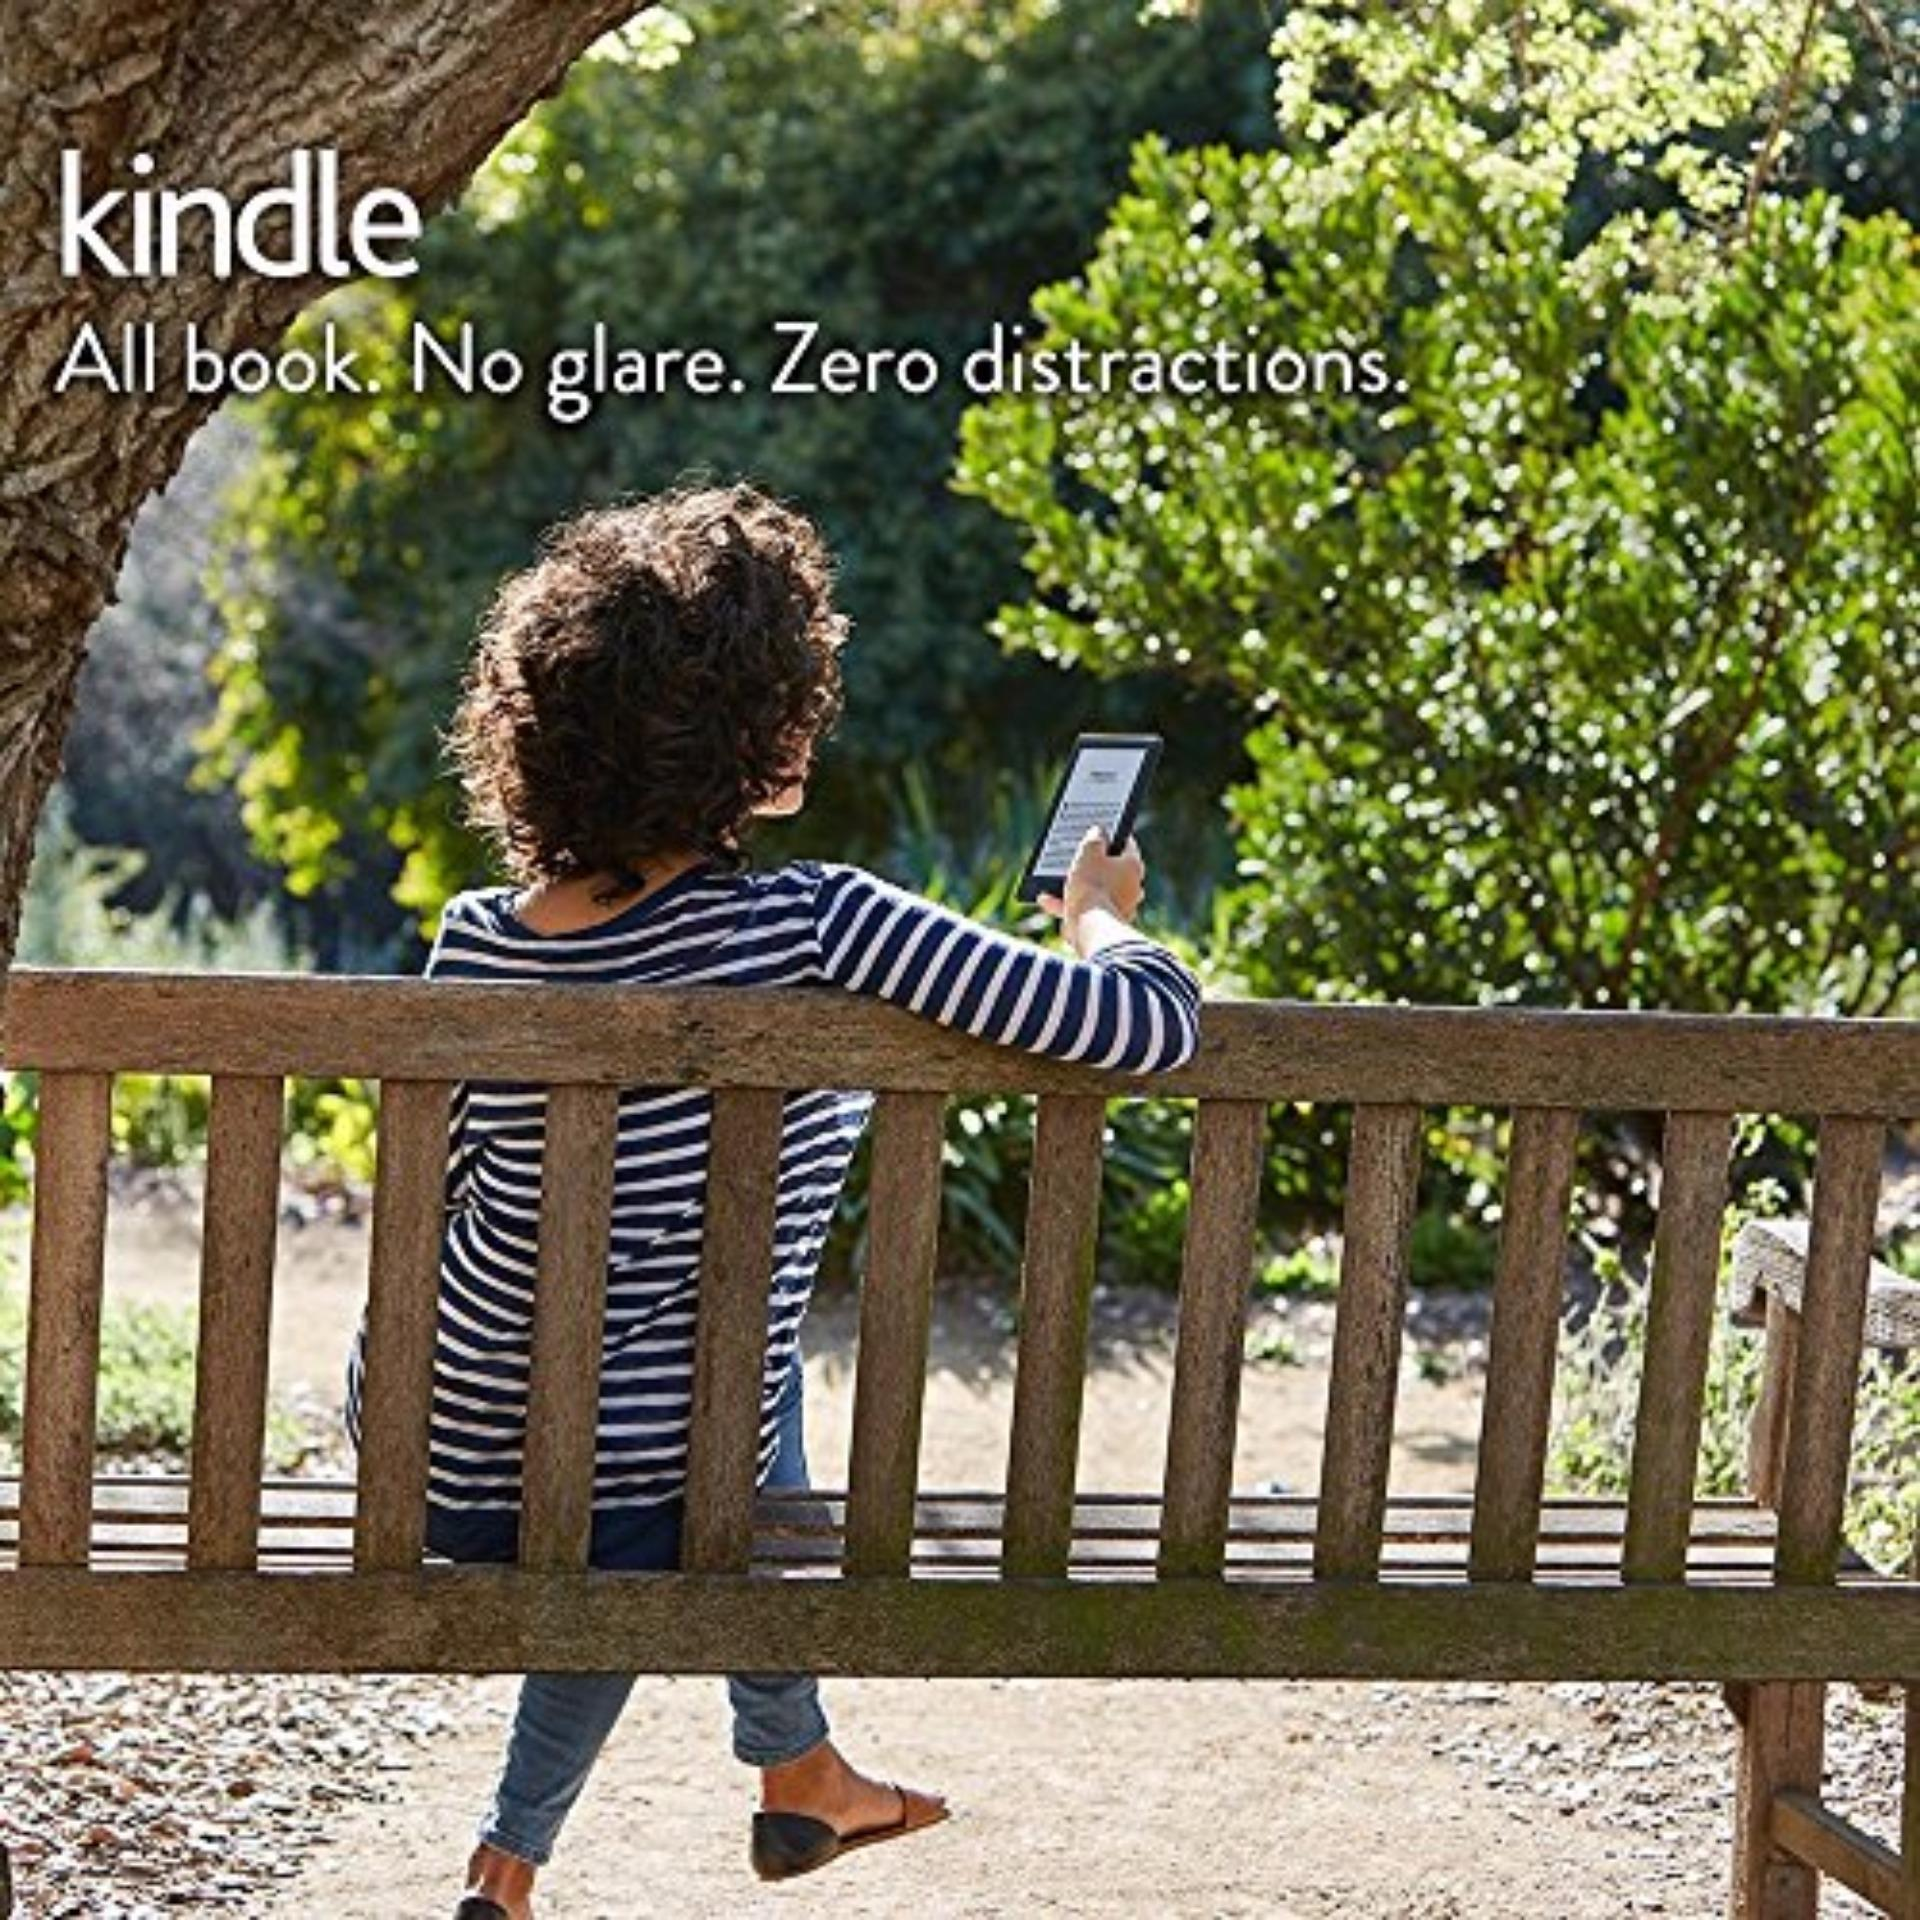 Amazon Kindle 8th Gen Black 2016 (Latest, With Special Offers, USA Edition) + 1 x Glossy, 1 x Matt Screen...